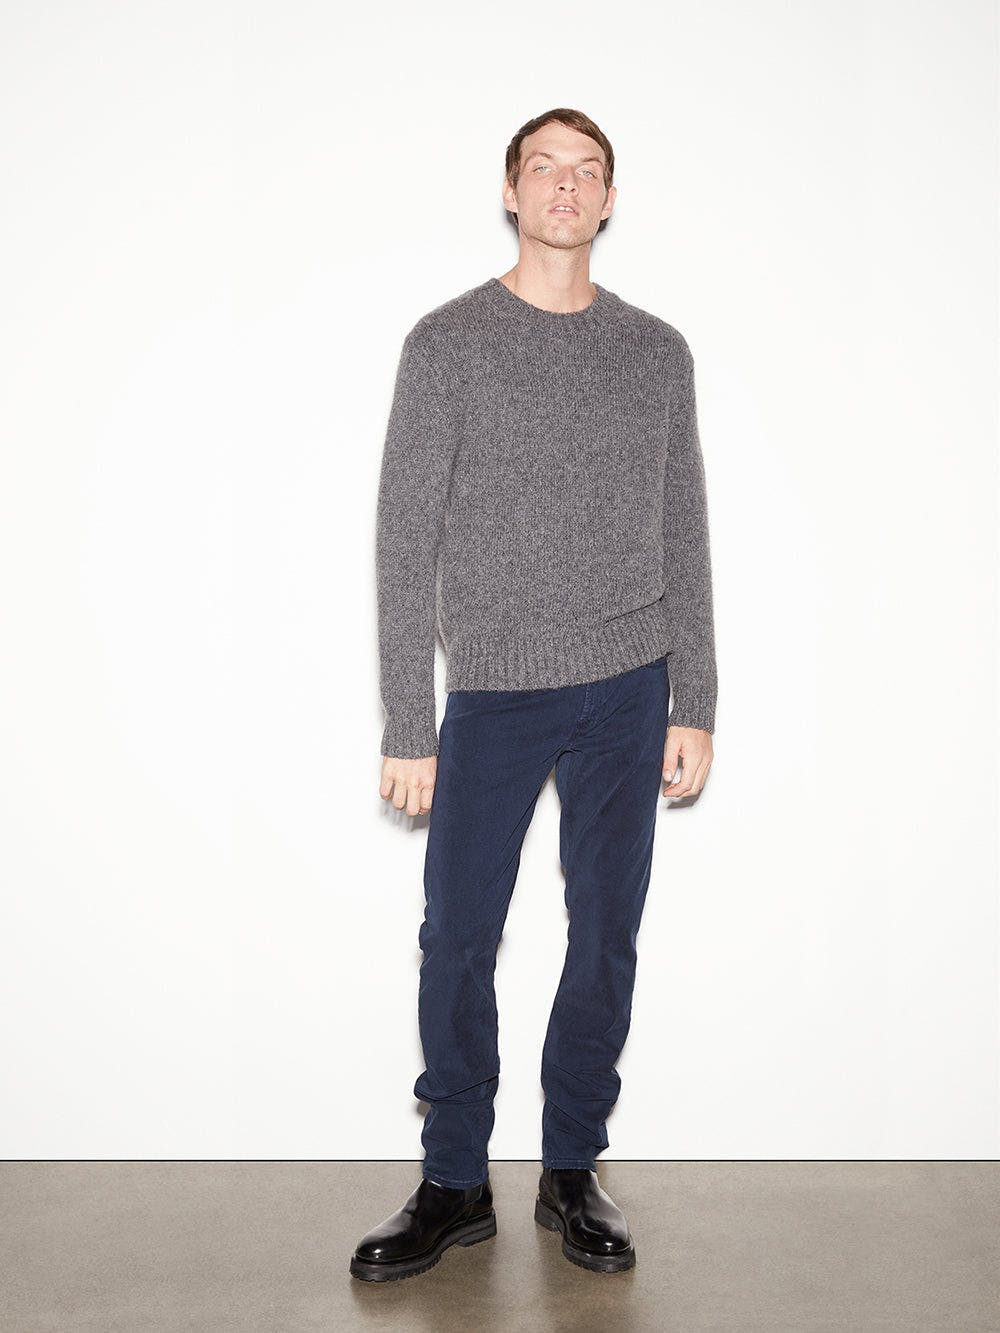 sweater full body view alt:hover